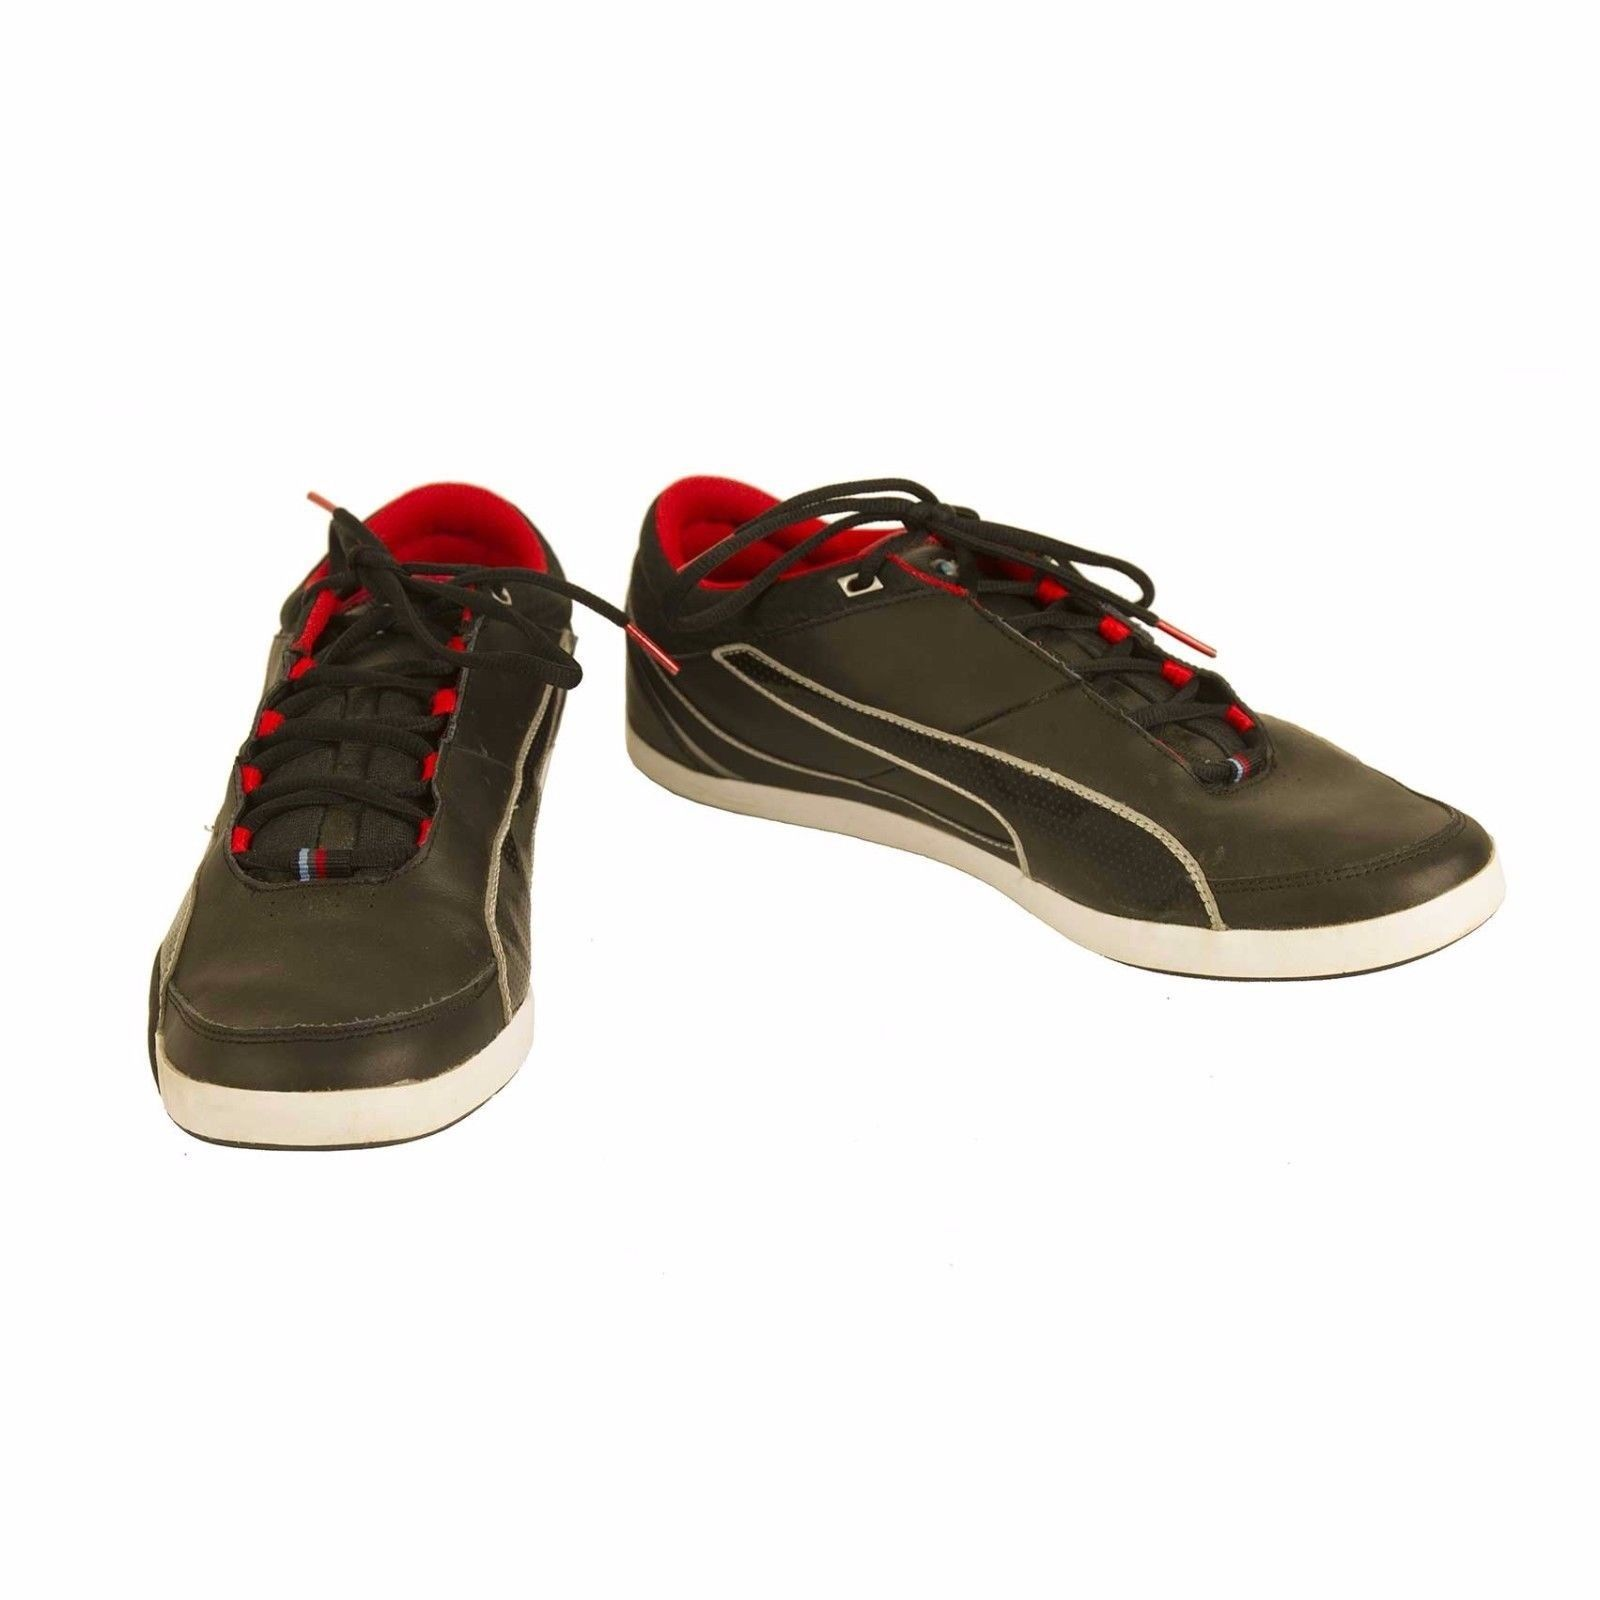 Primary image for Puma BMW M series Black leather Shoes Sneakers Trainers EU 45 US 11,5 UK 10,5